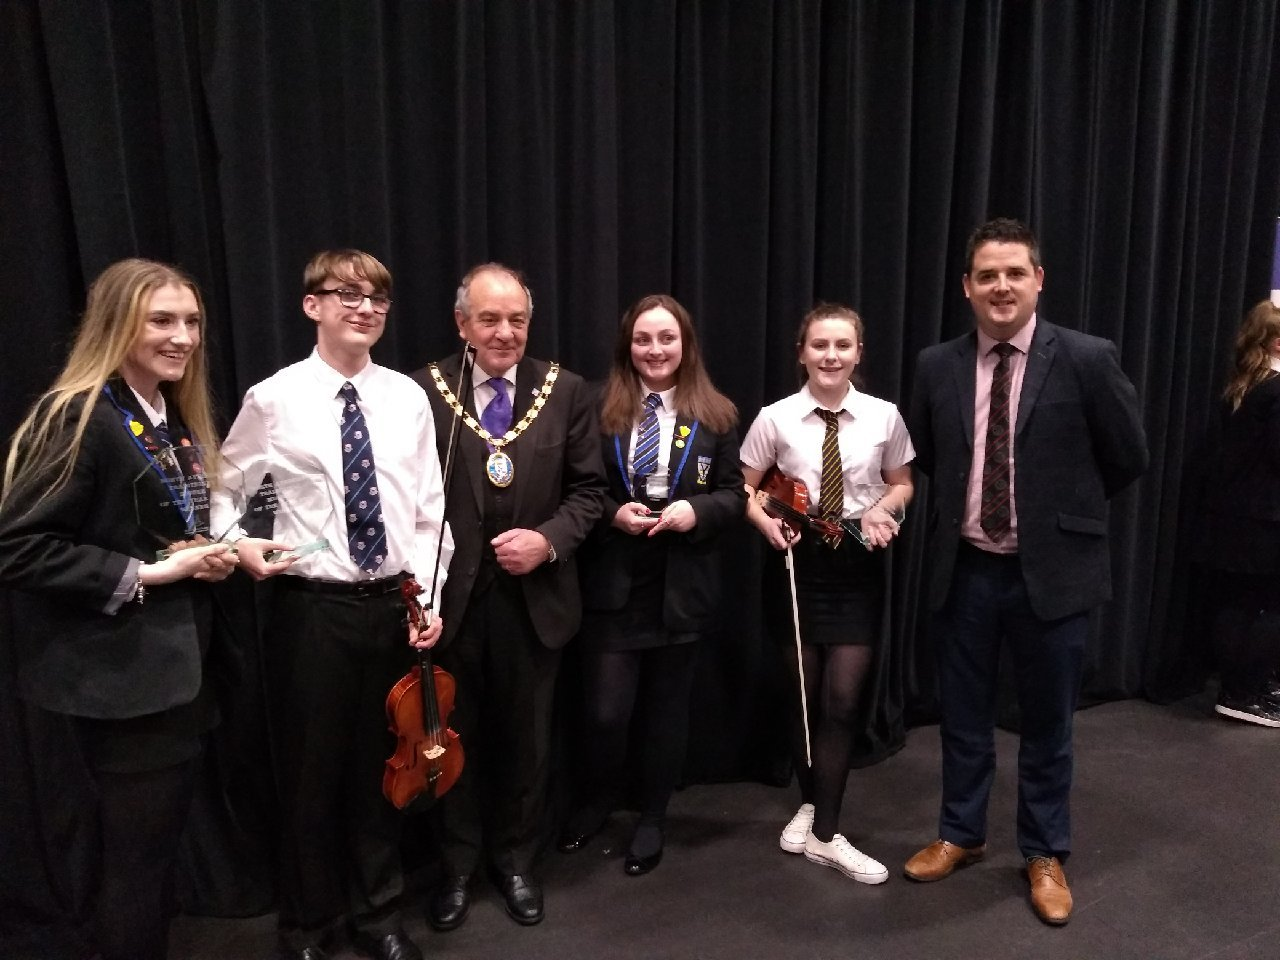 AN Auchenharvie pupil was celebrating recently after he picked up a top musical award. Reece O'Hanlon of Auchenharvie Academy took the top prize in the Traditional Musician of the Year section (S4-S6) for his fiddle playing. Well done, Reece.